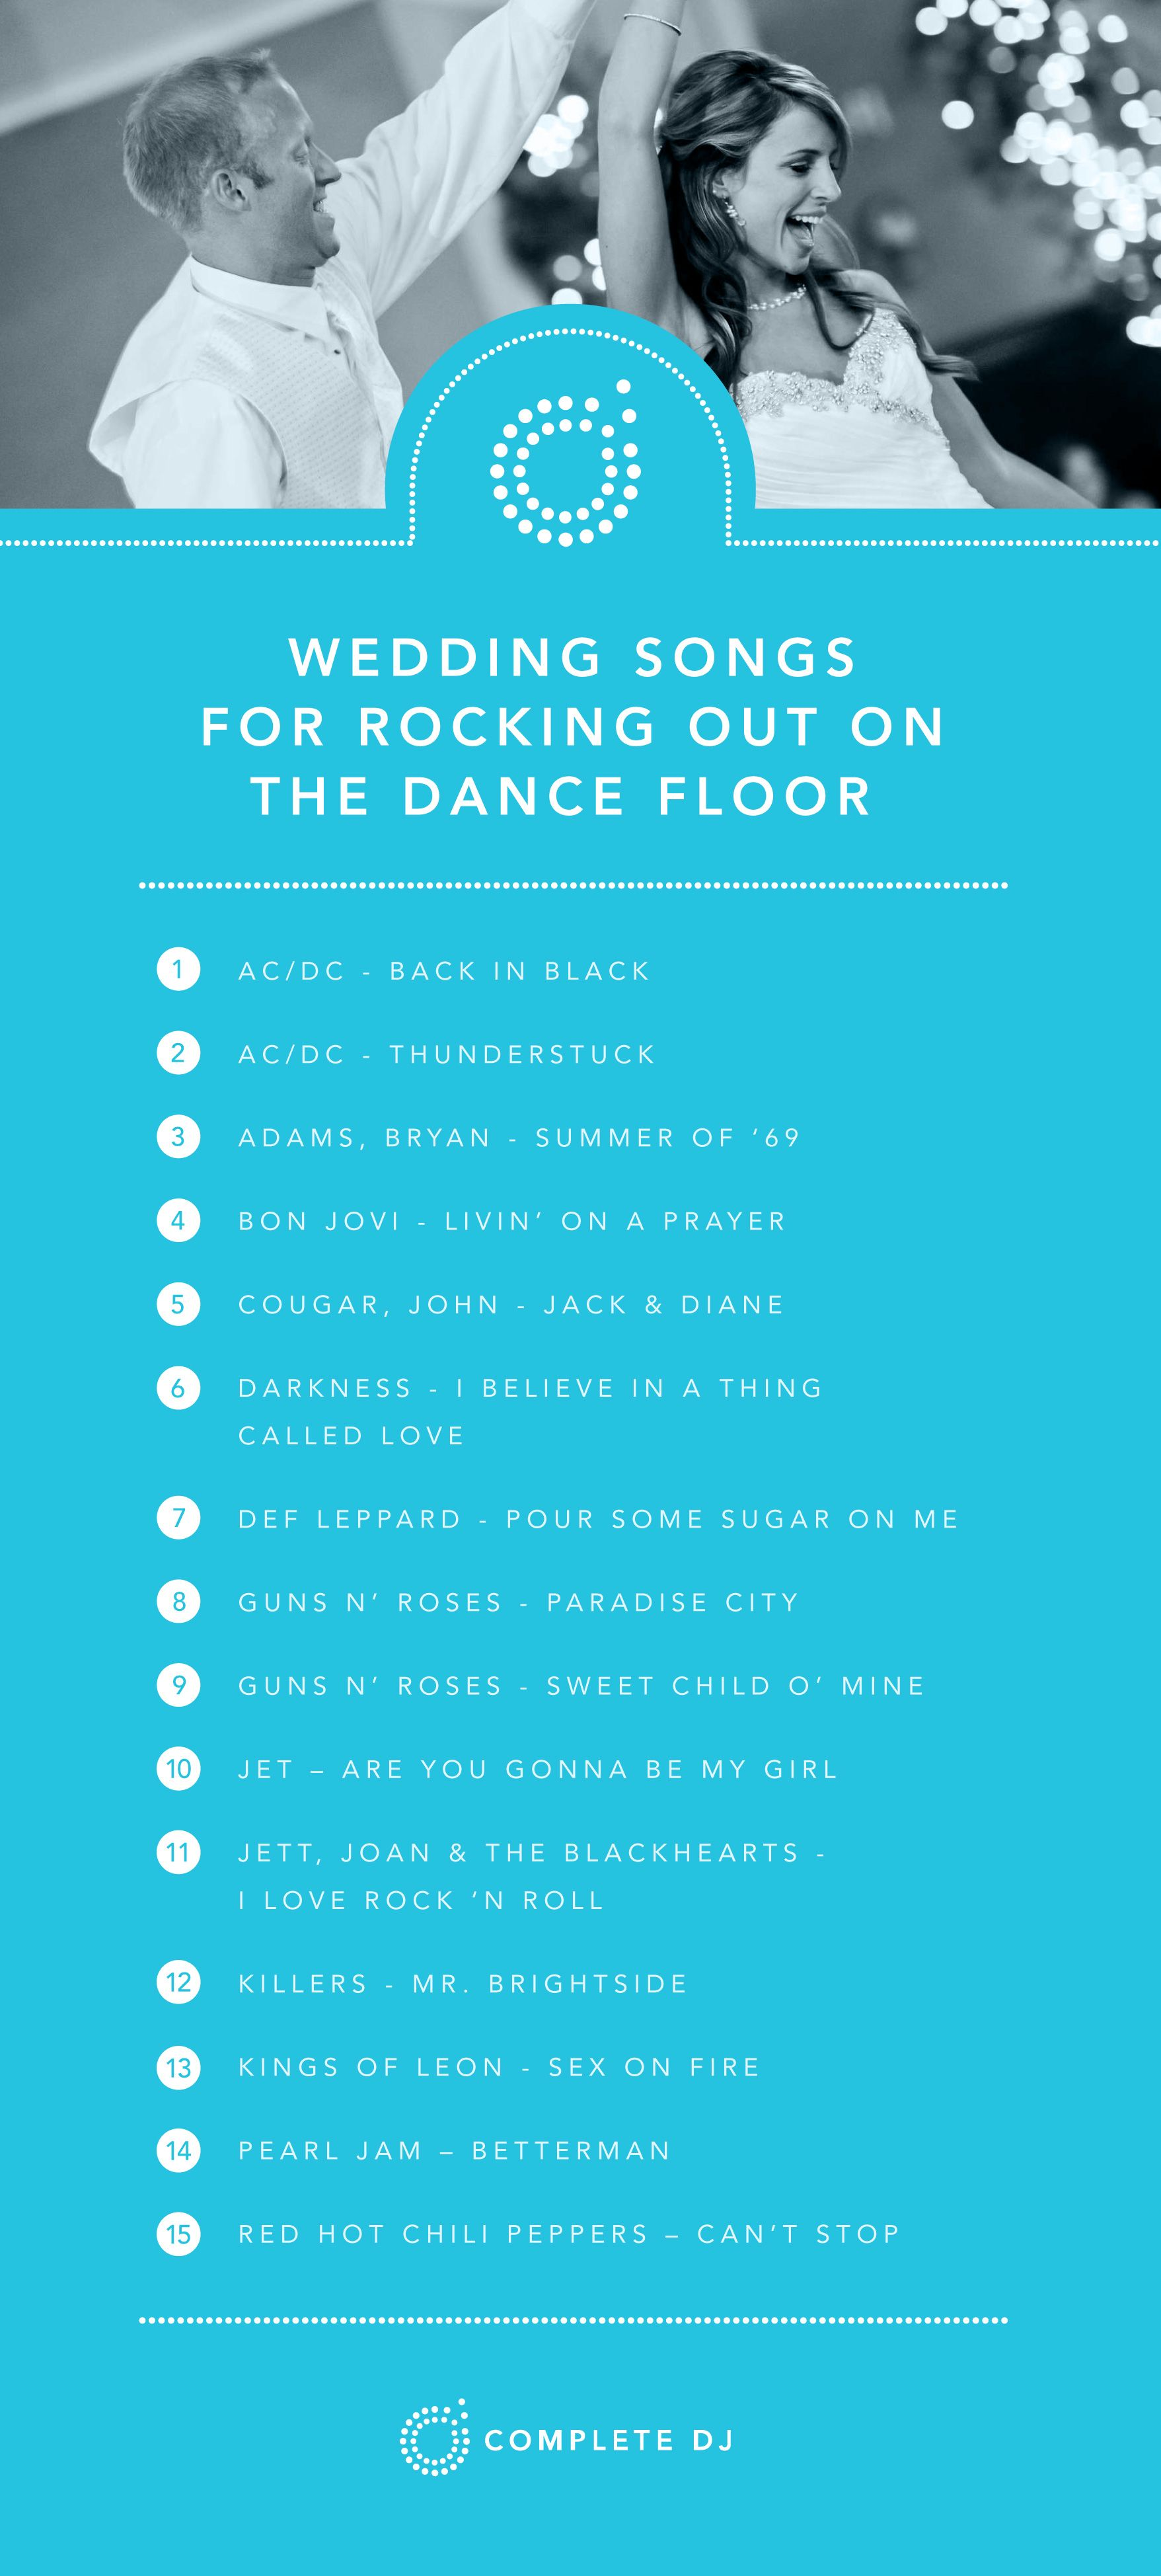 These songs are great on the dance floor if your crowd